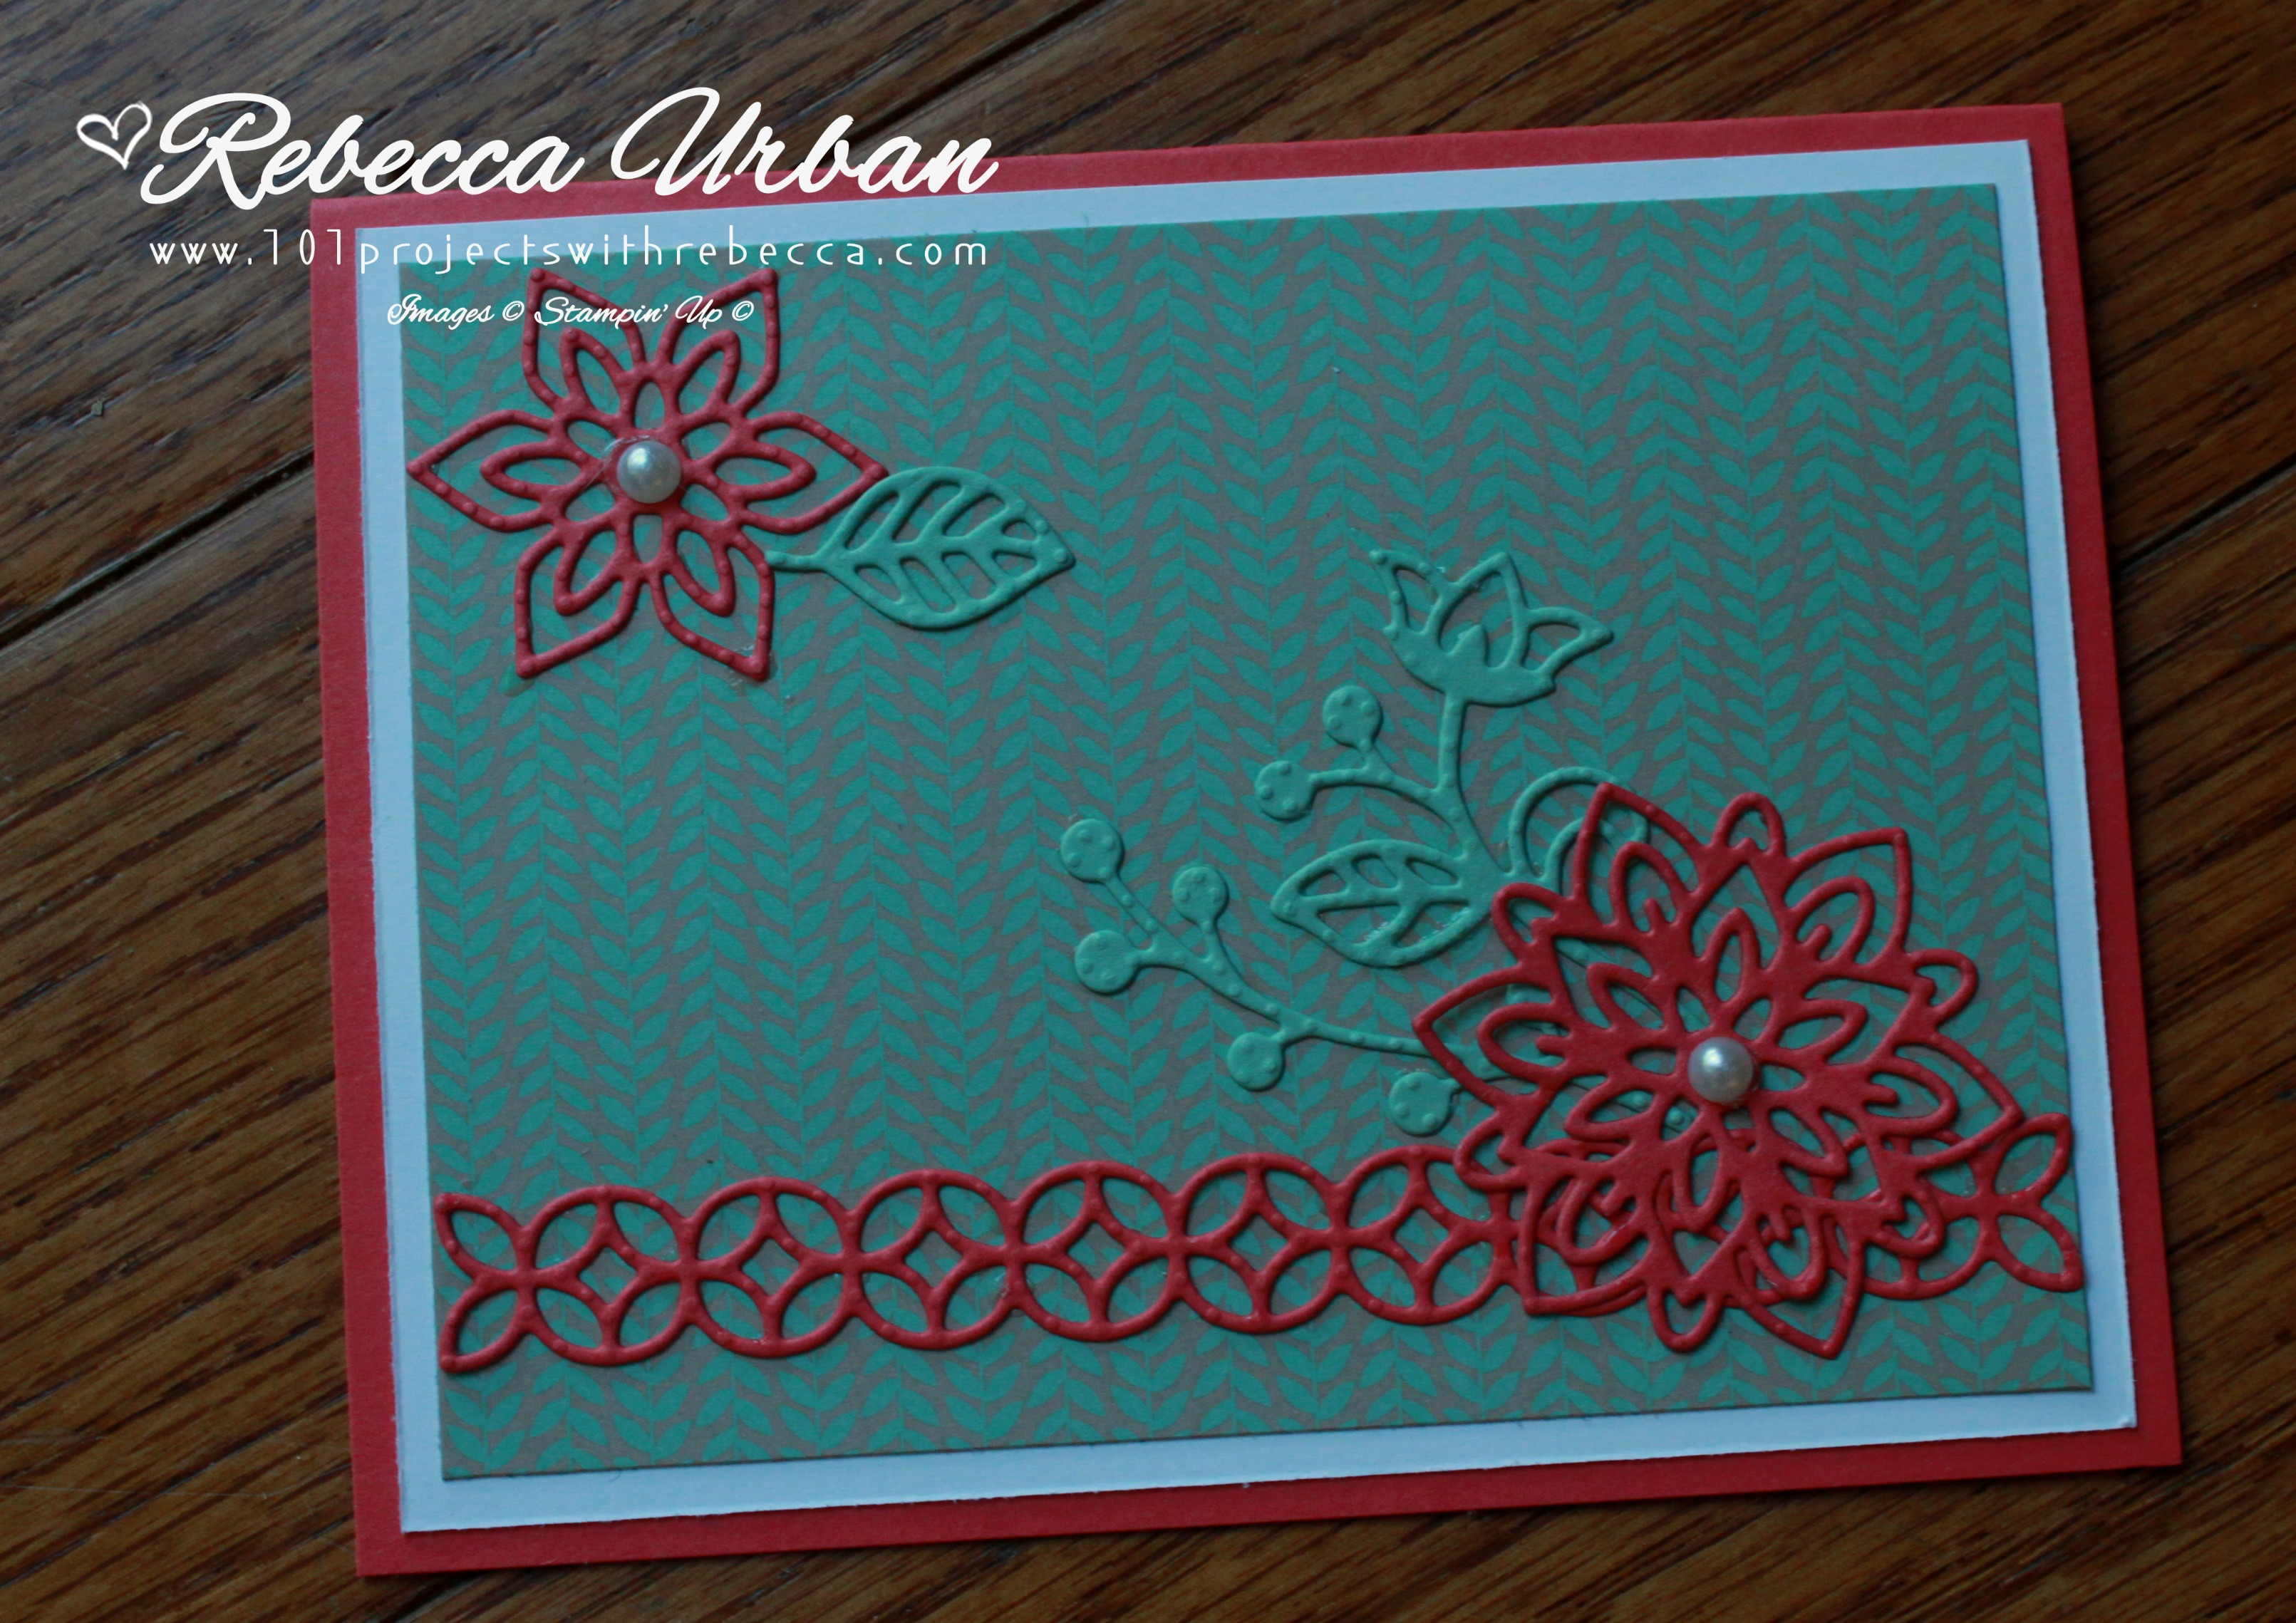 Stampin Up Affectionately Yours DSP, Stampin Up Flourish Thinlits